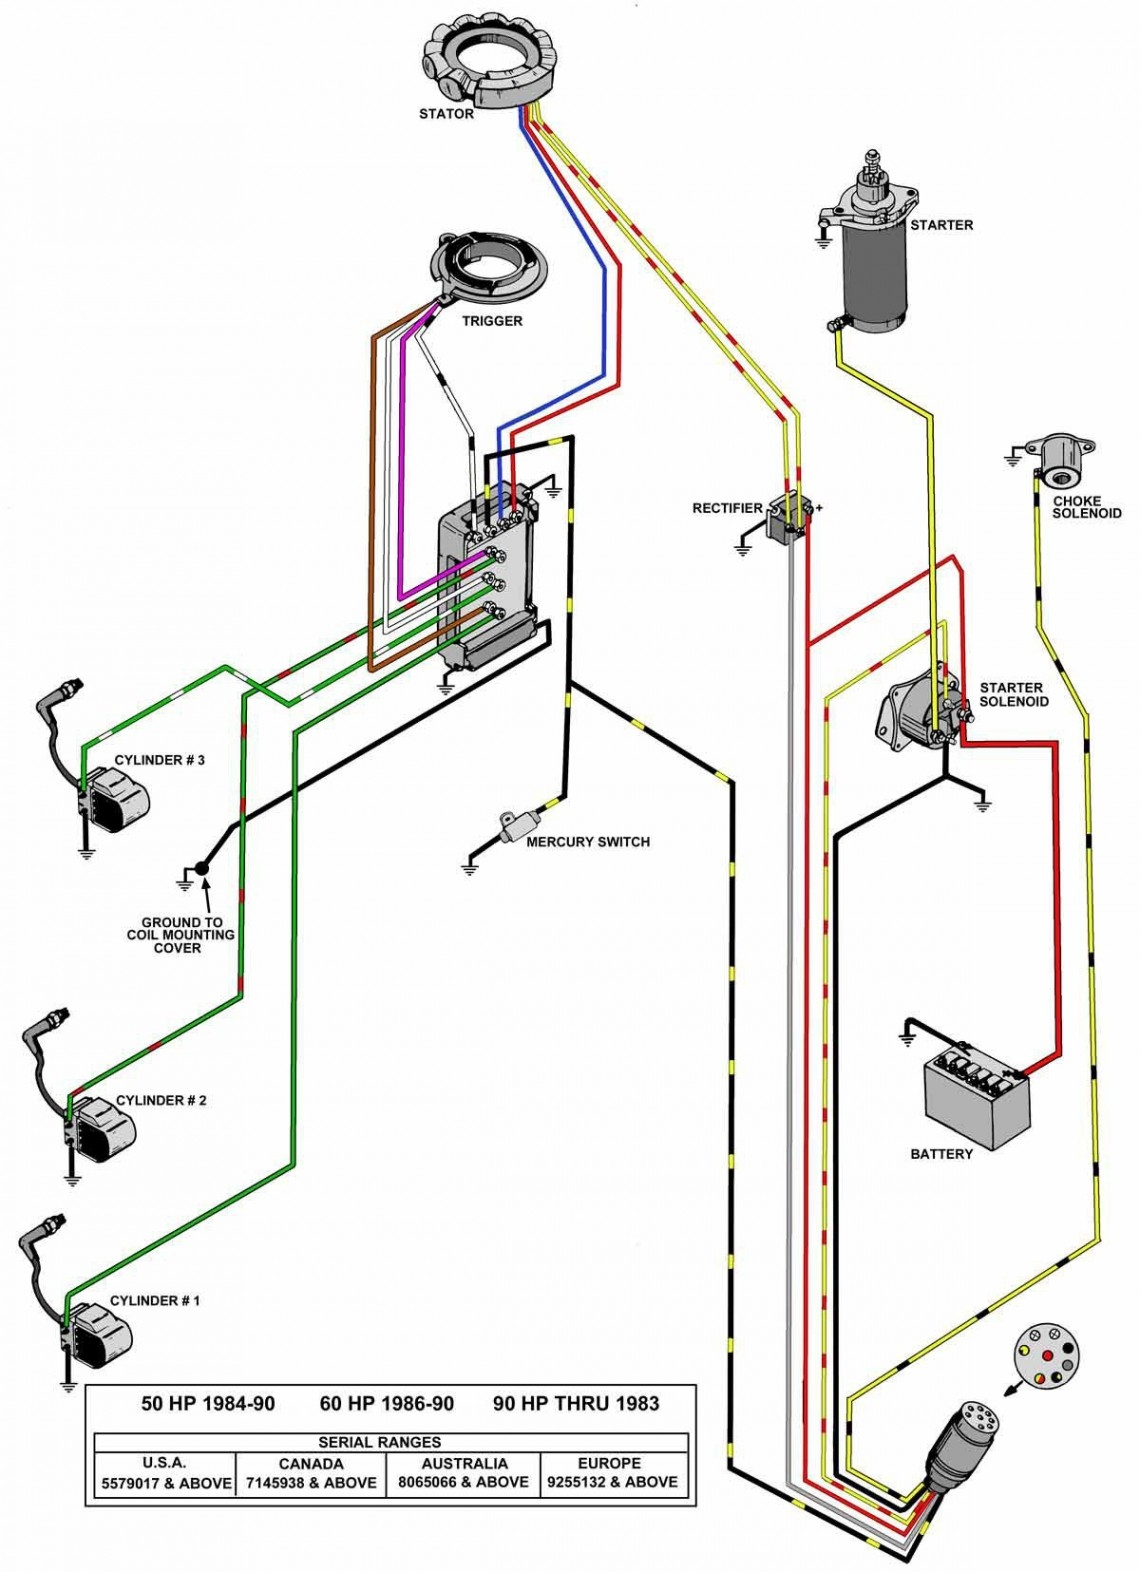 mercury outboard wiring diagram schematic Collection-Mercury Outboard Wiring Diagram Schematic – Wiring Diagram 1978 Johnson 70 Hp Outboard Motor Mercury Outboard 10-m